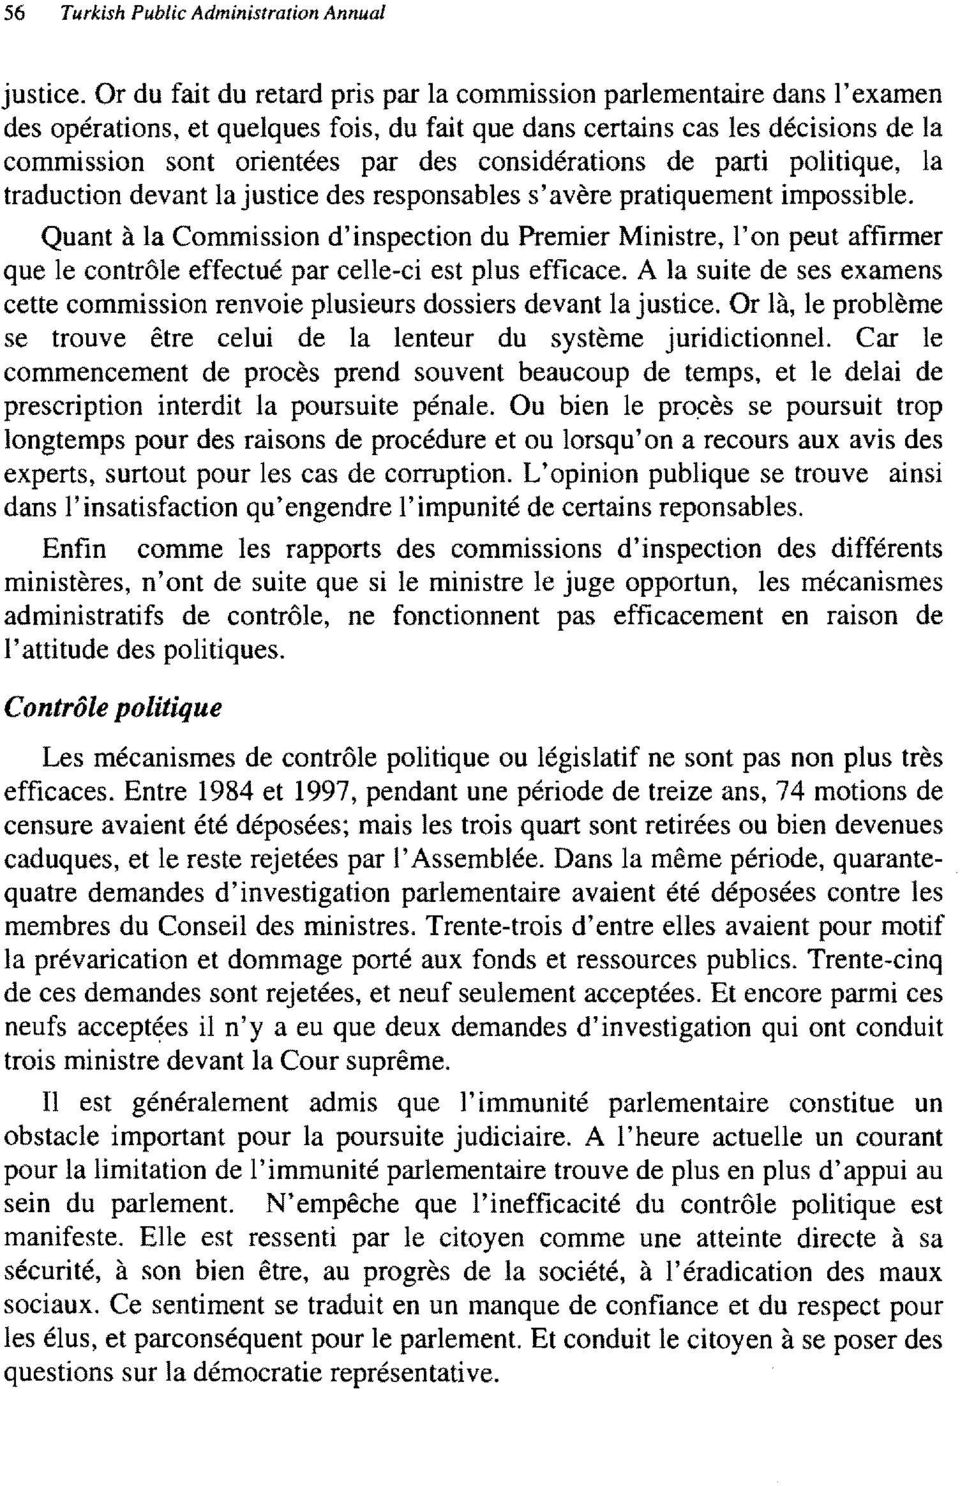 considerations de parti politique, la traduction devant lajustice des responsables s'avere pratiquement impossible.